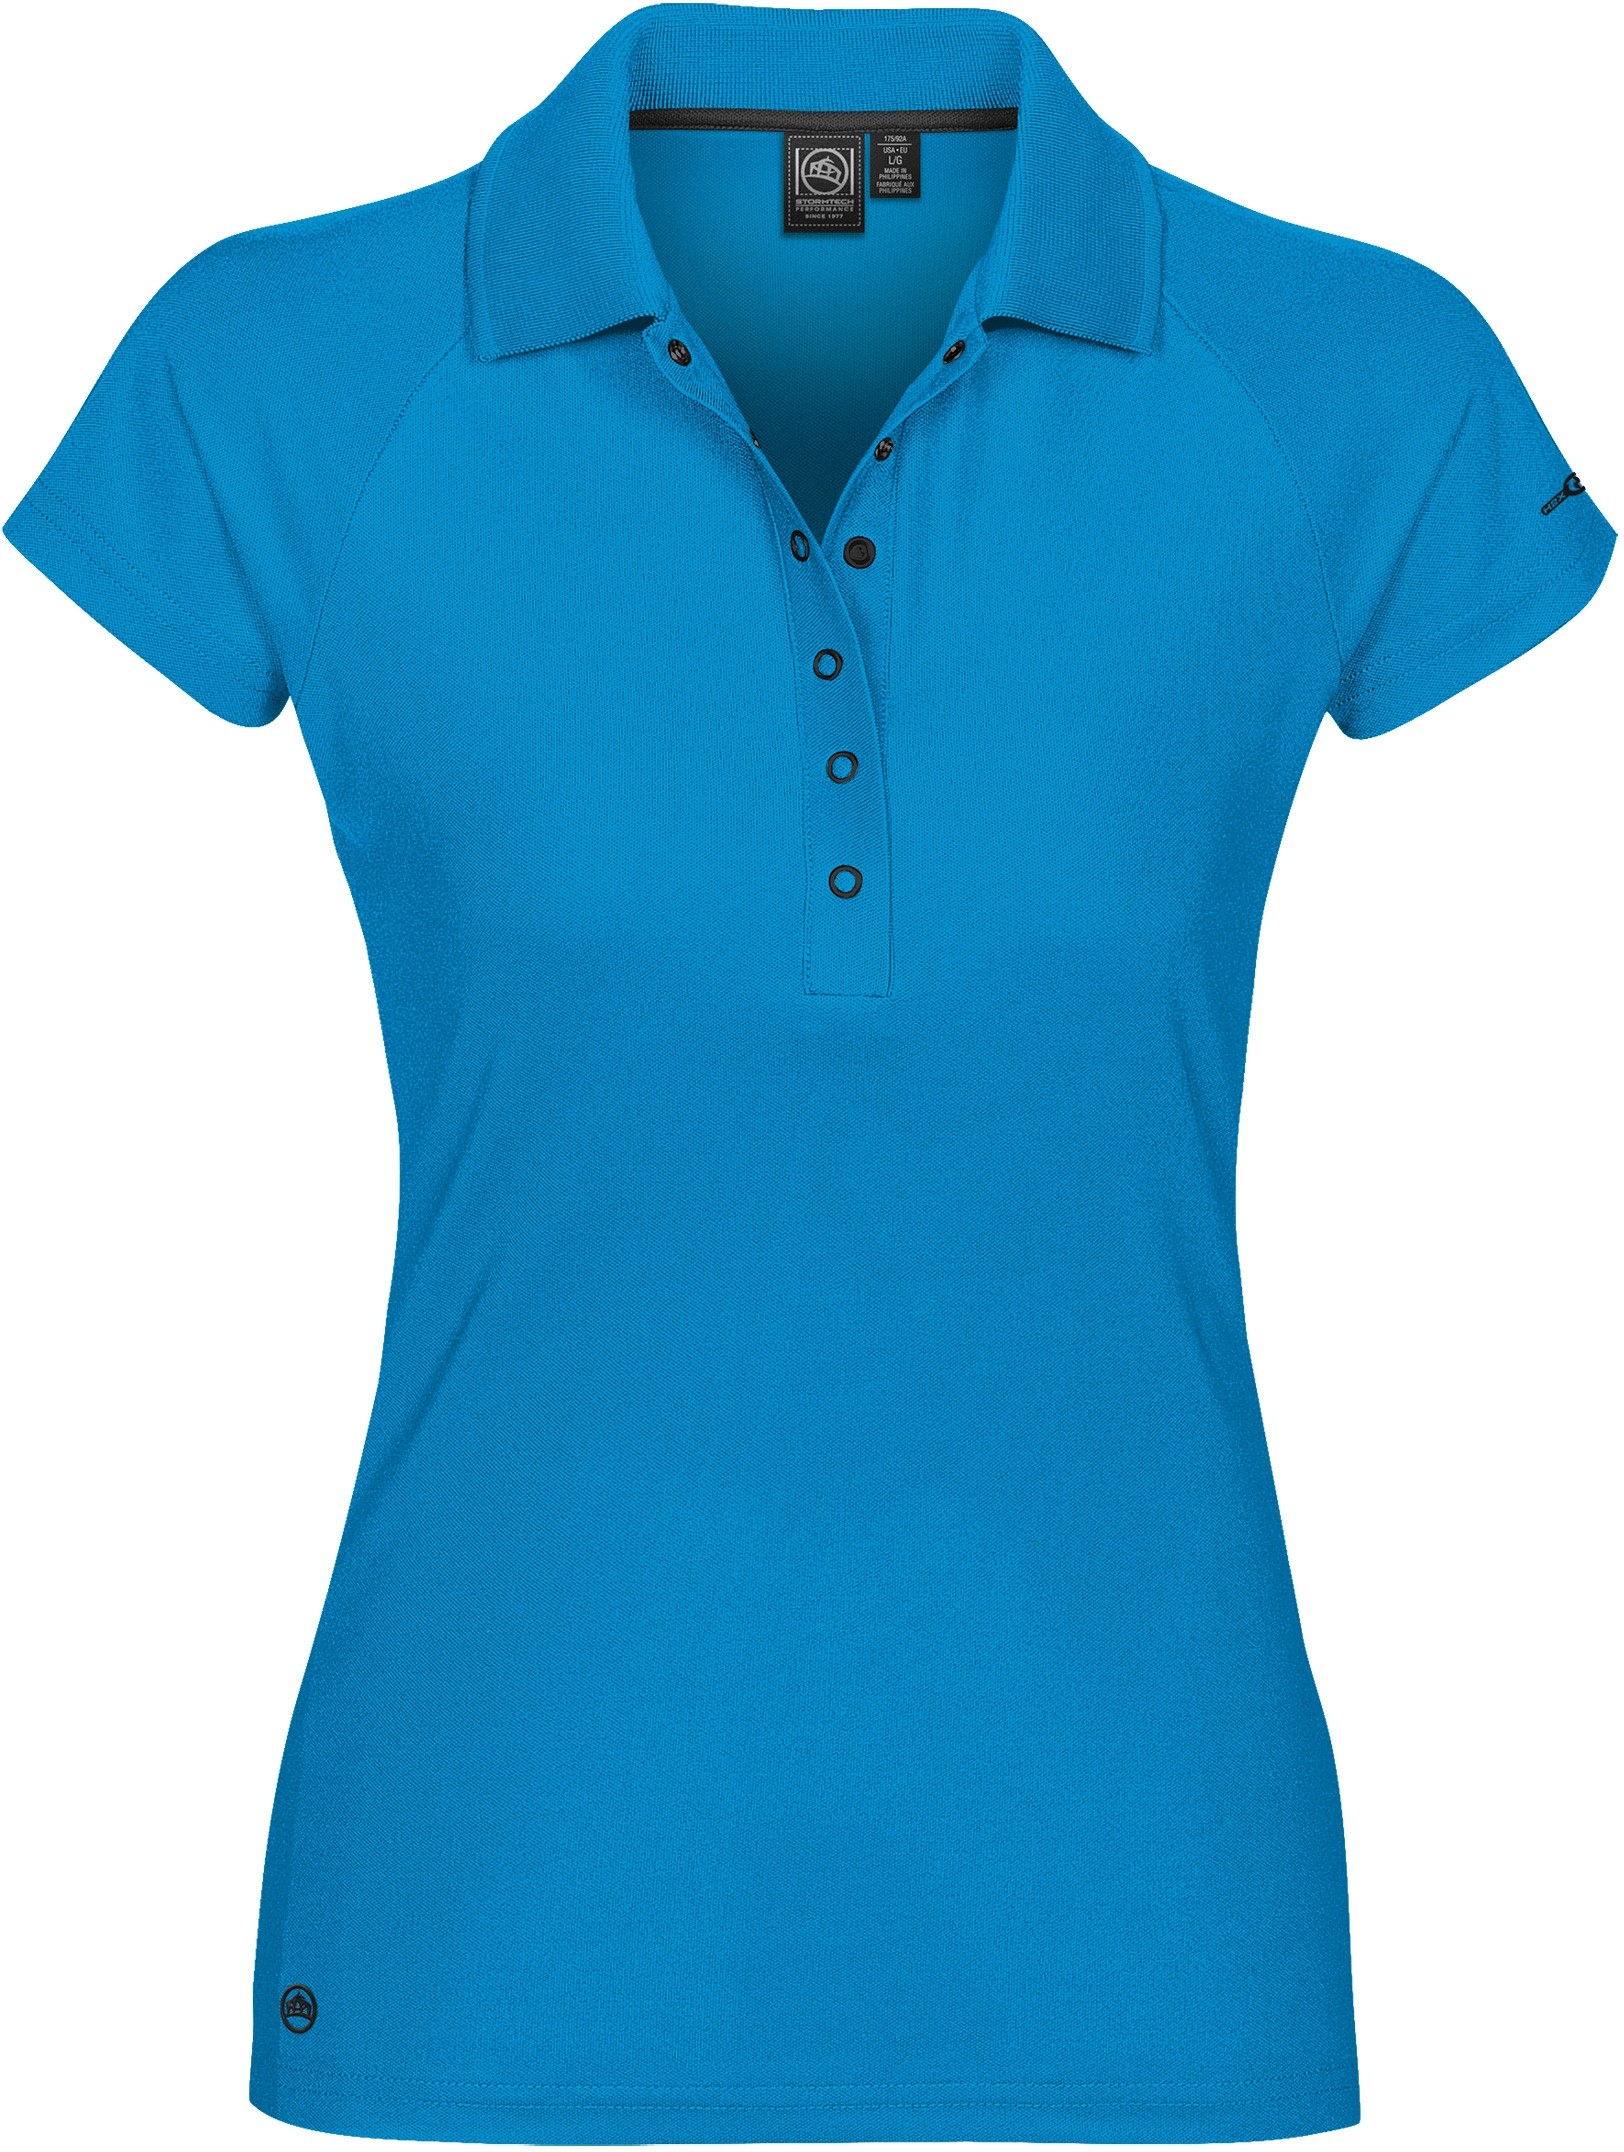 Women's Epic Performance Polo